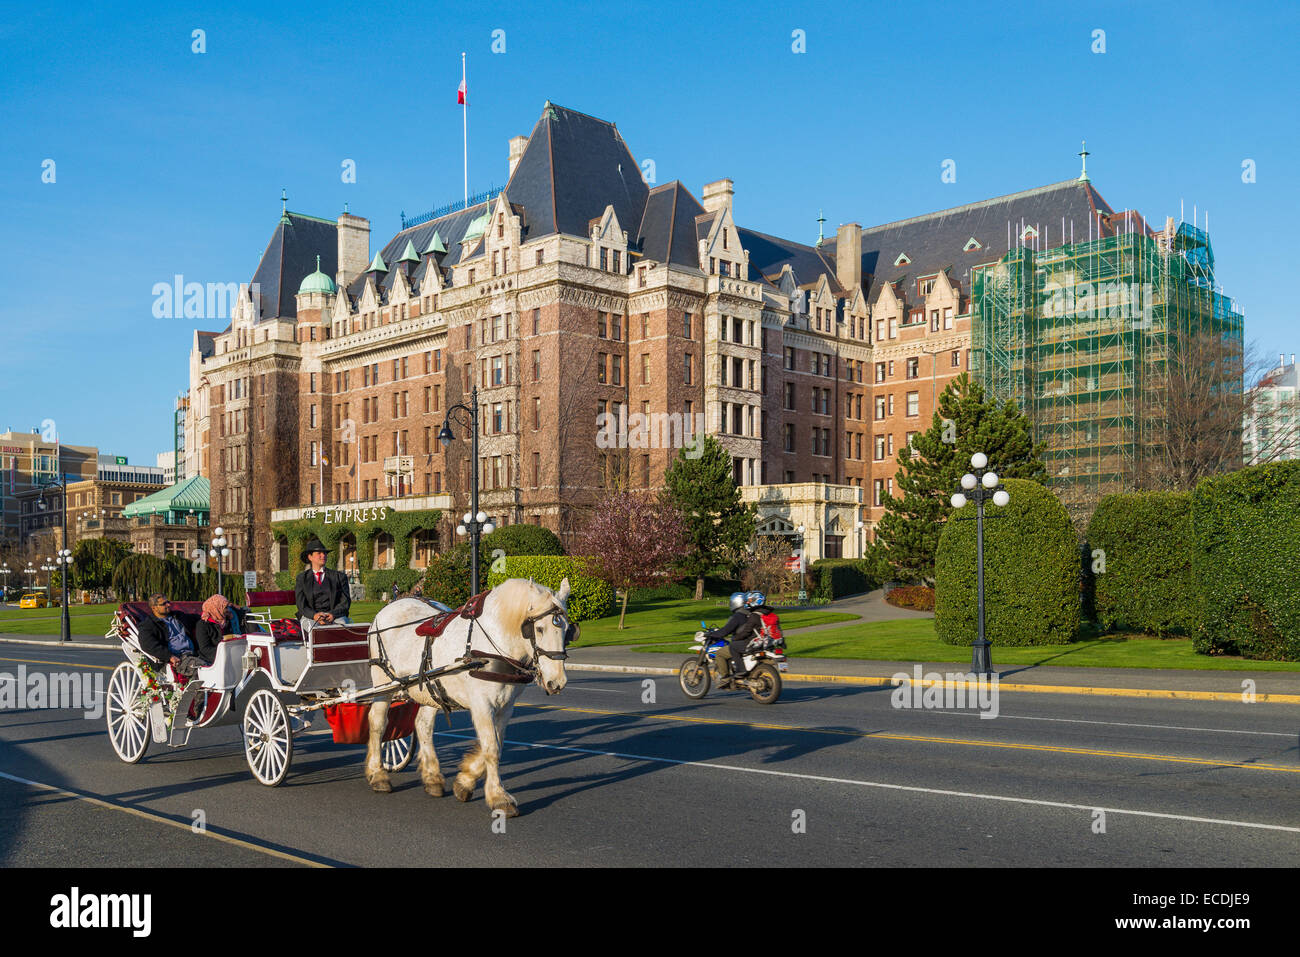 Horse drawn carriage passes by the Fairmont Empress Hotel, Victoria, British Columbia, Canada - Stock Image